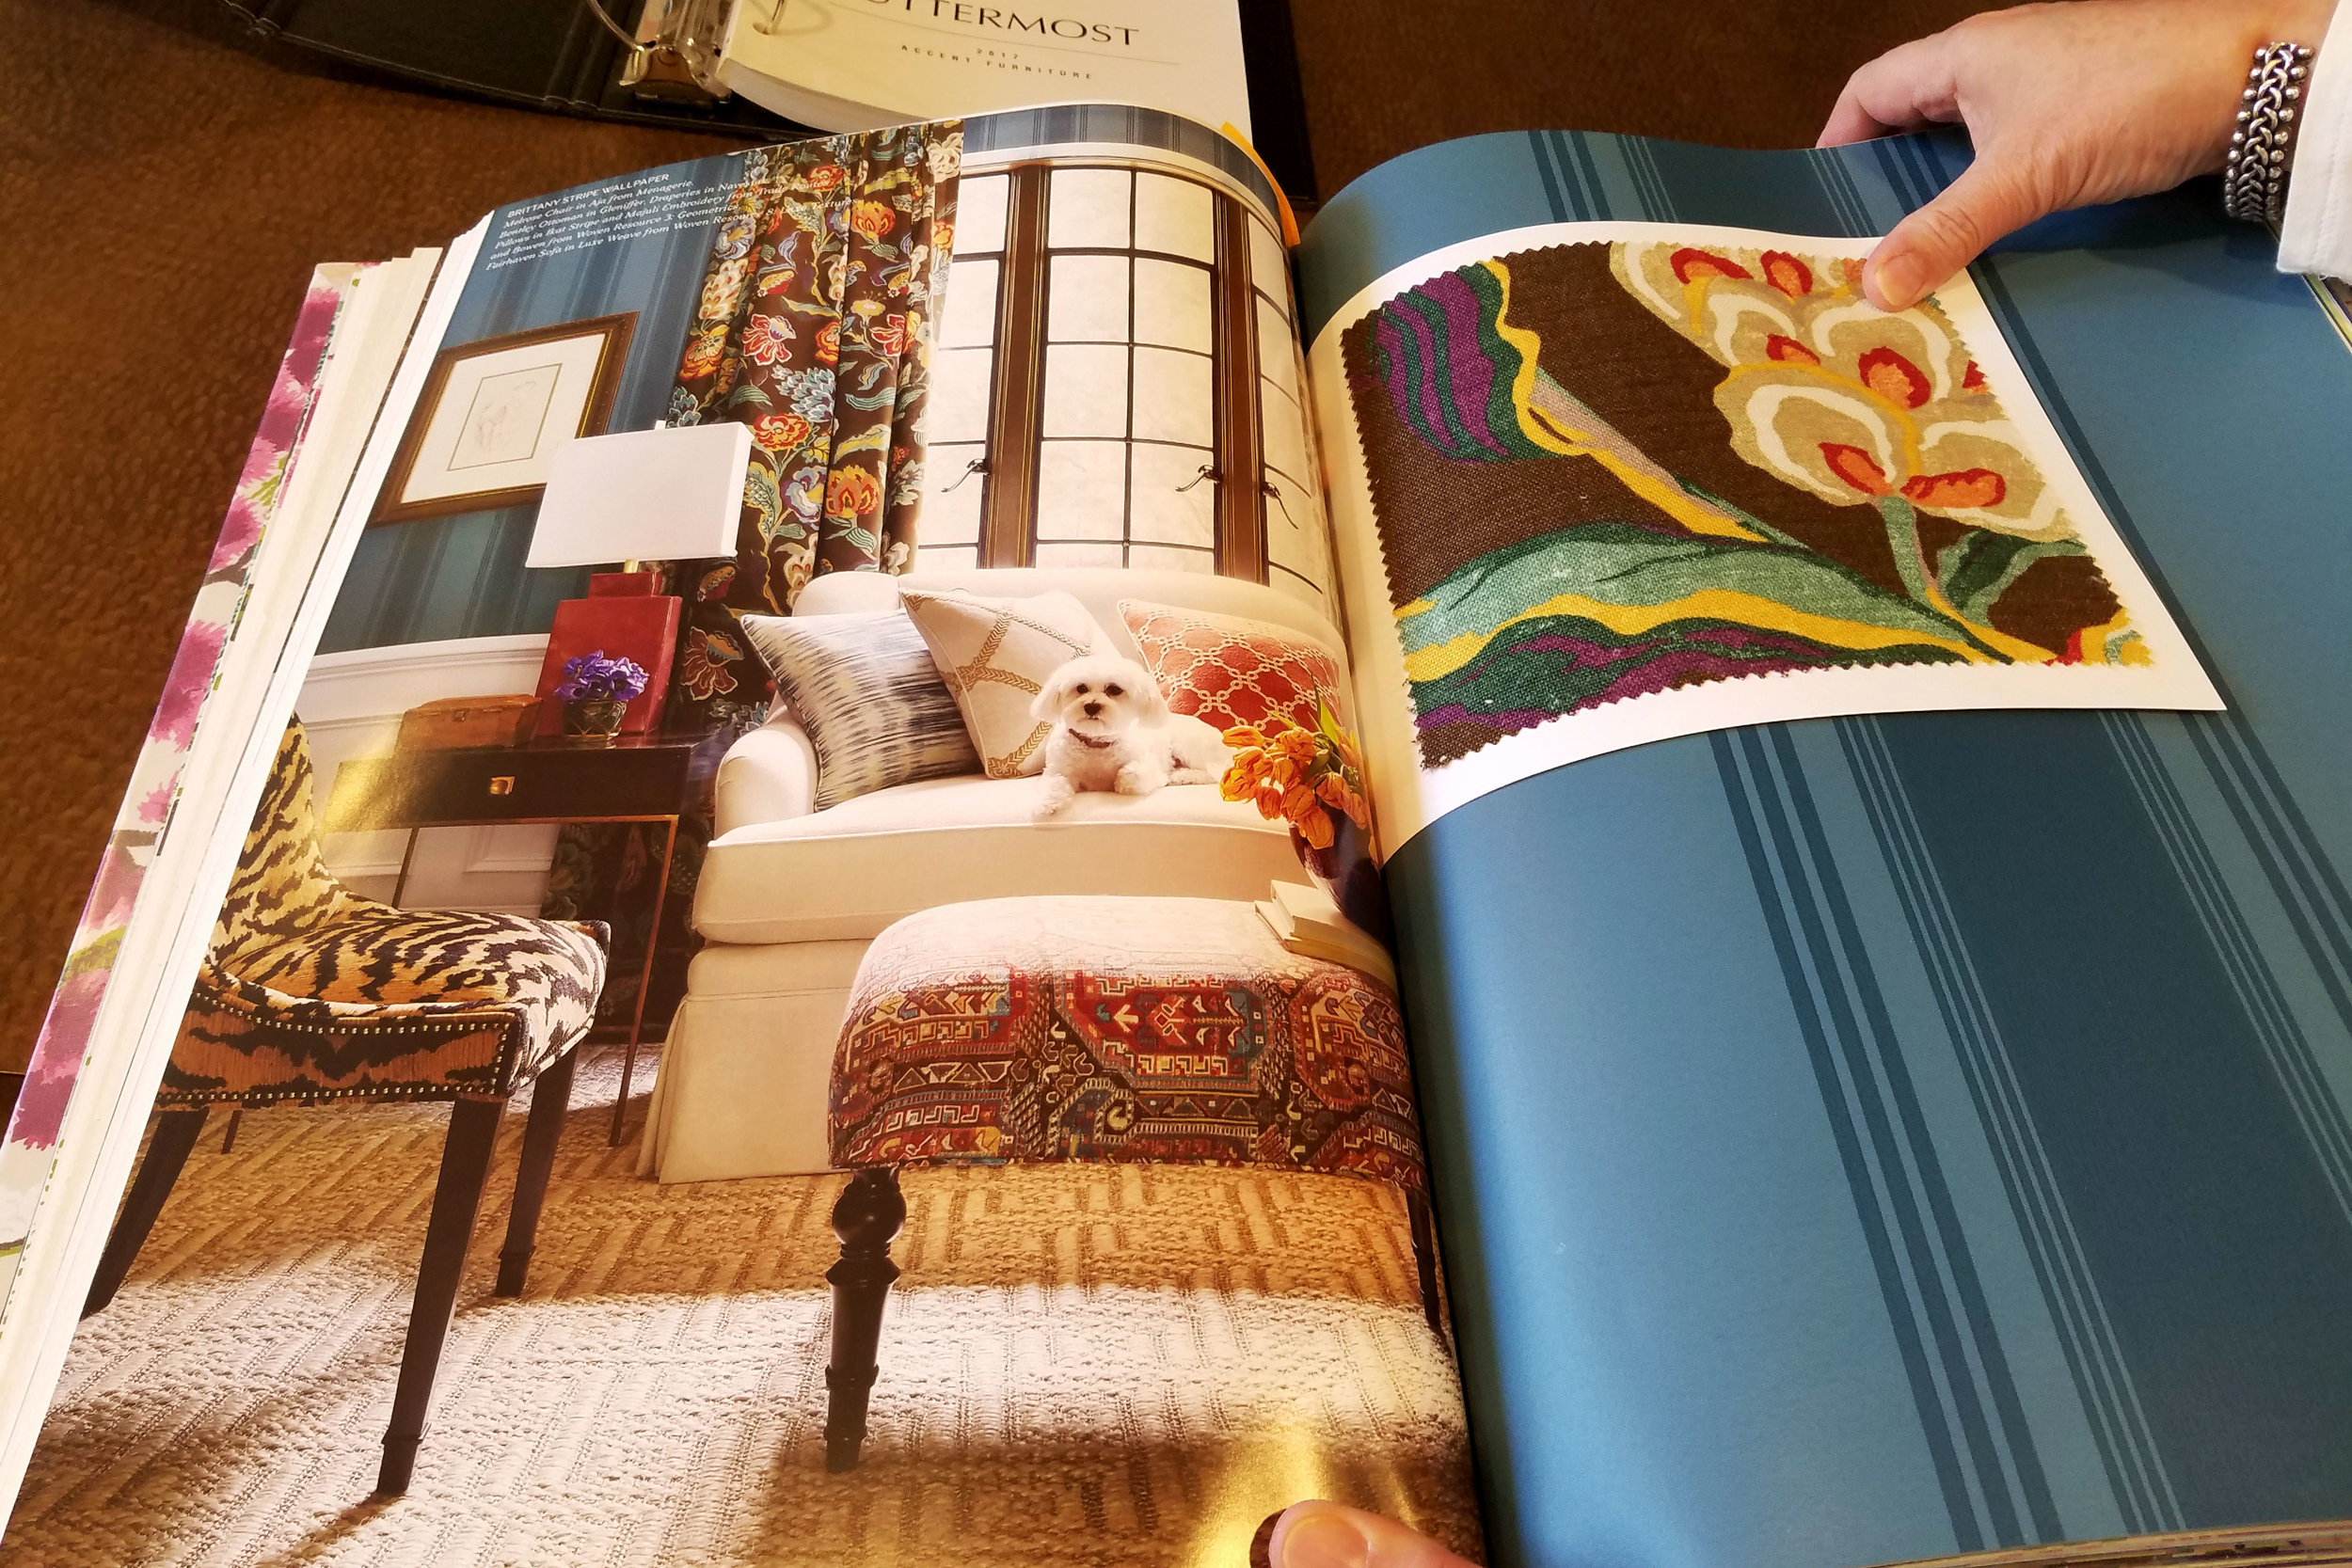 How do you feel when you look at these photos from our Thibaut wallpaper books?  Are you also able to instantly connect with these spaces?